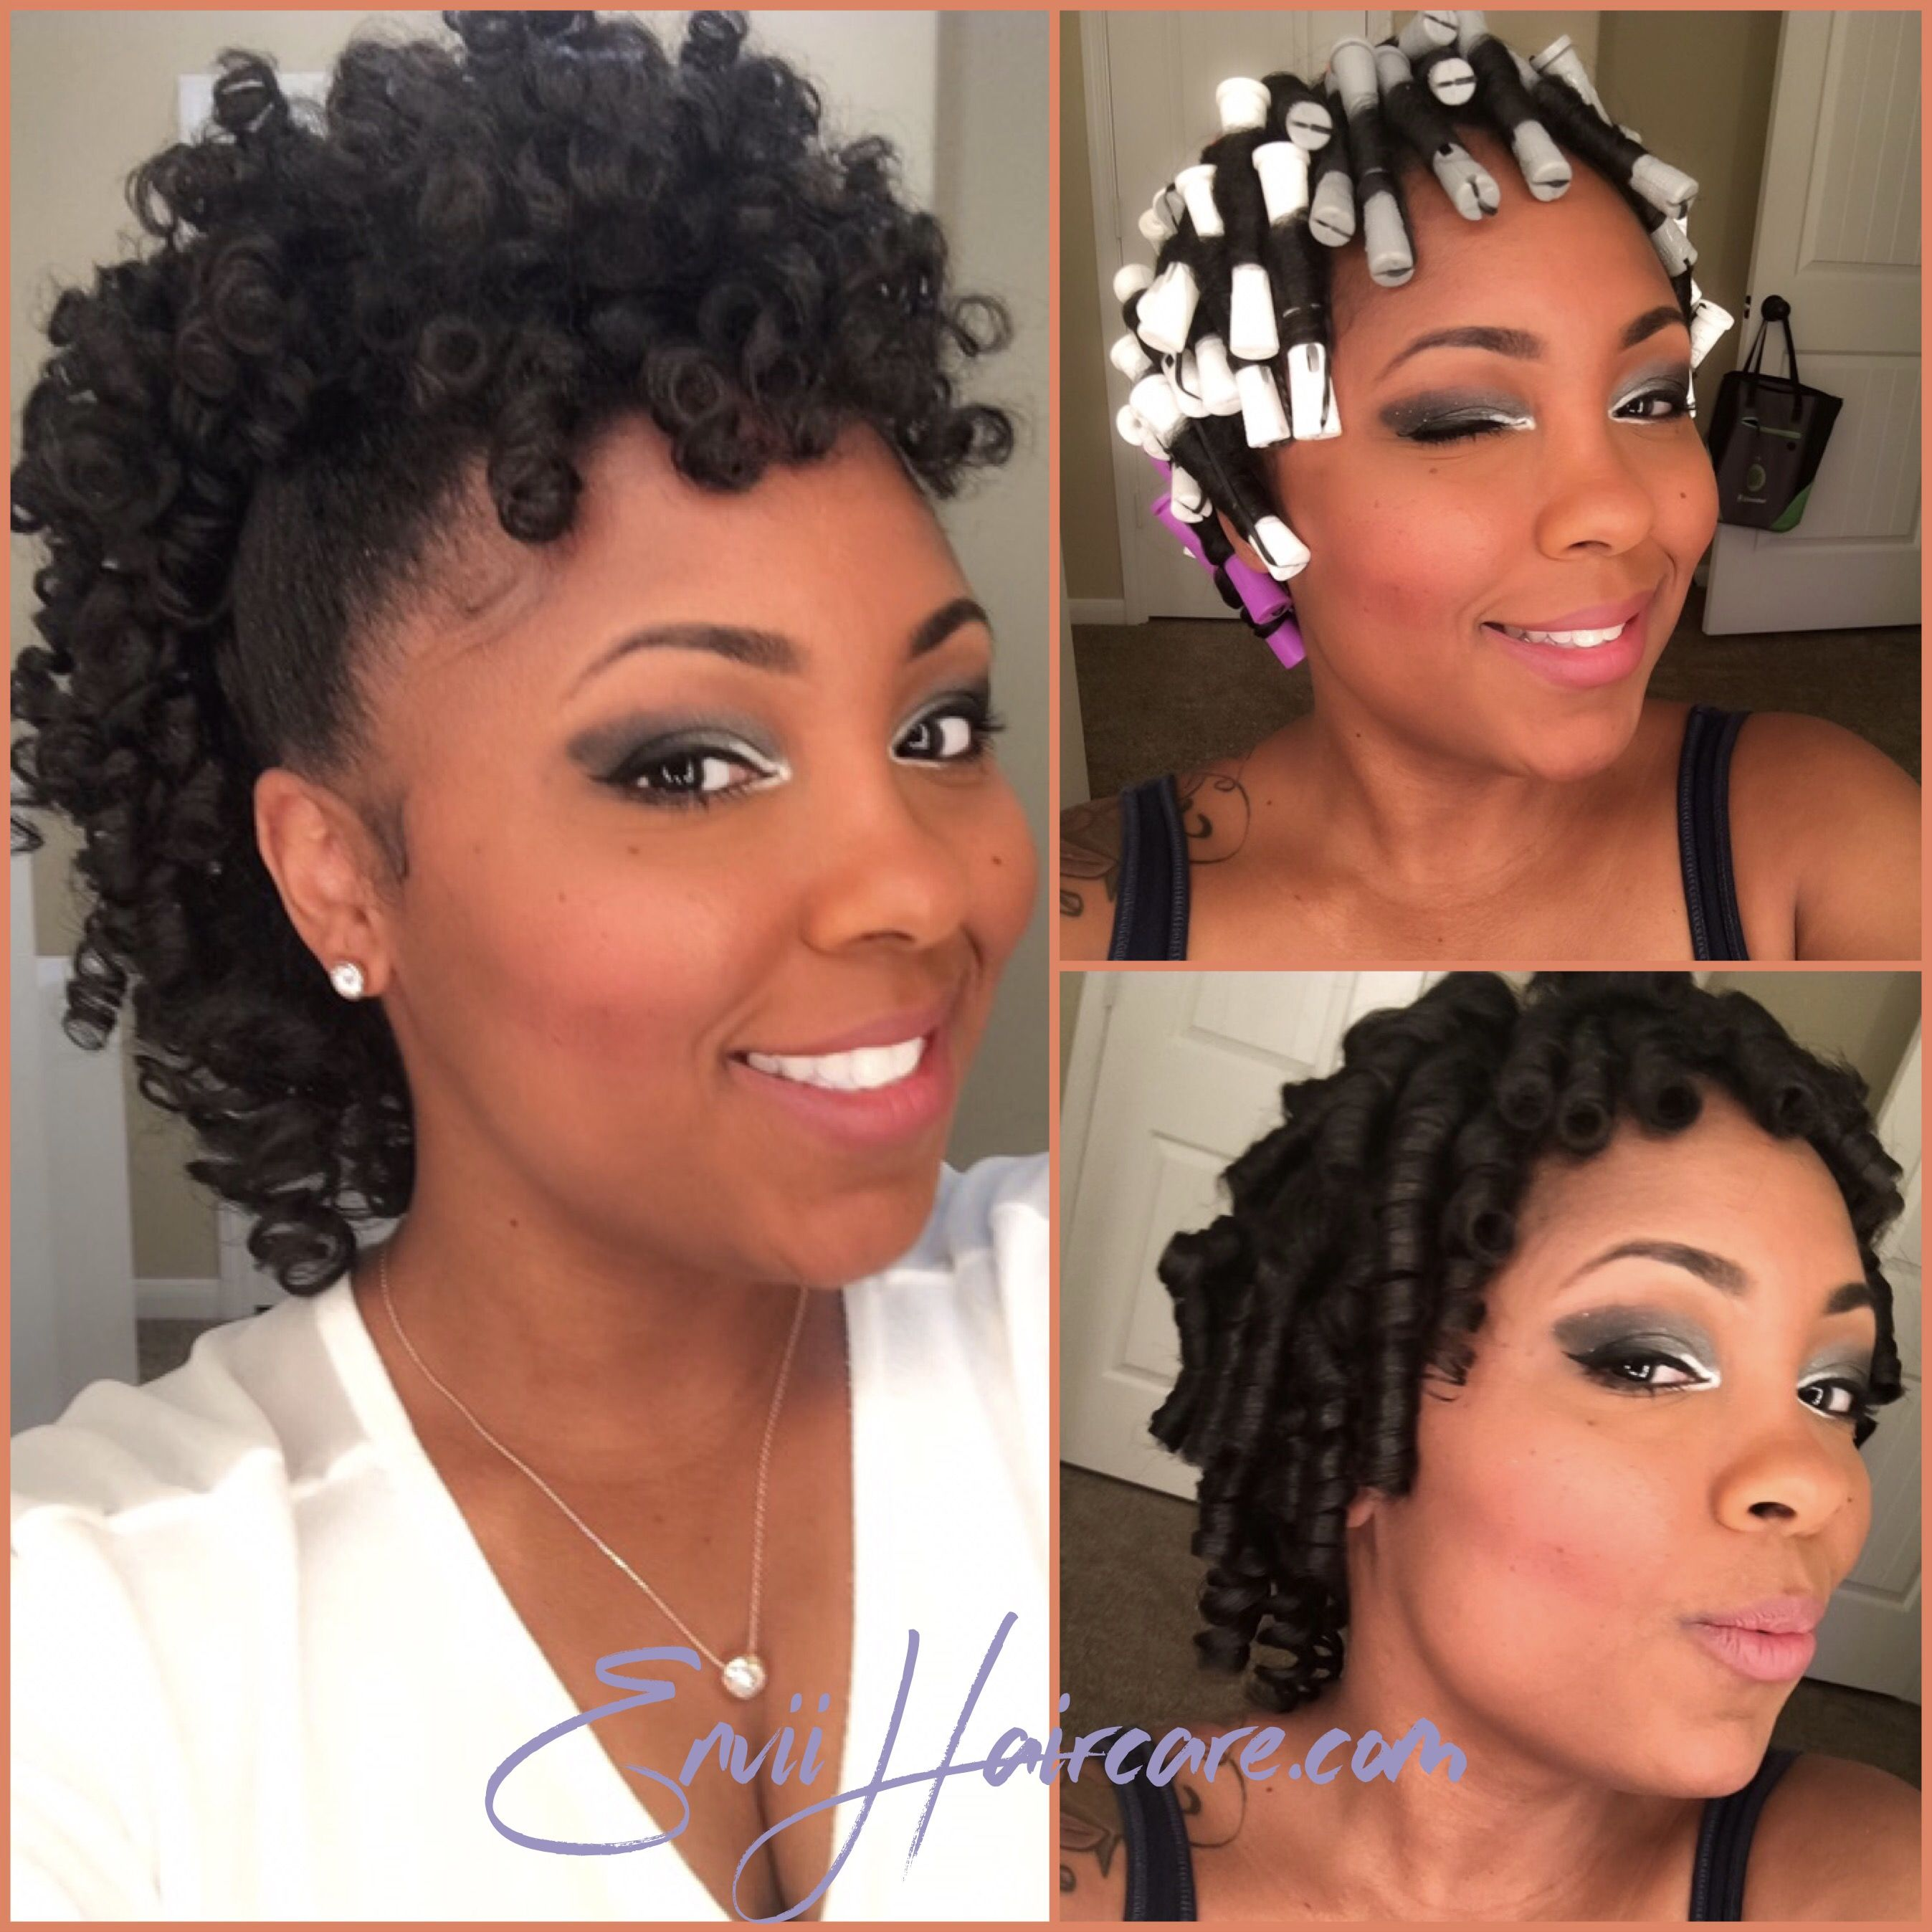 Perm Rod Set Achieved With Envii S Style Shine Foaming Mousse Curlyha Black Hair Updo Hairstyles Natural Hair Styles For Black Women Natural Hair Styles